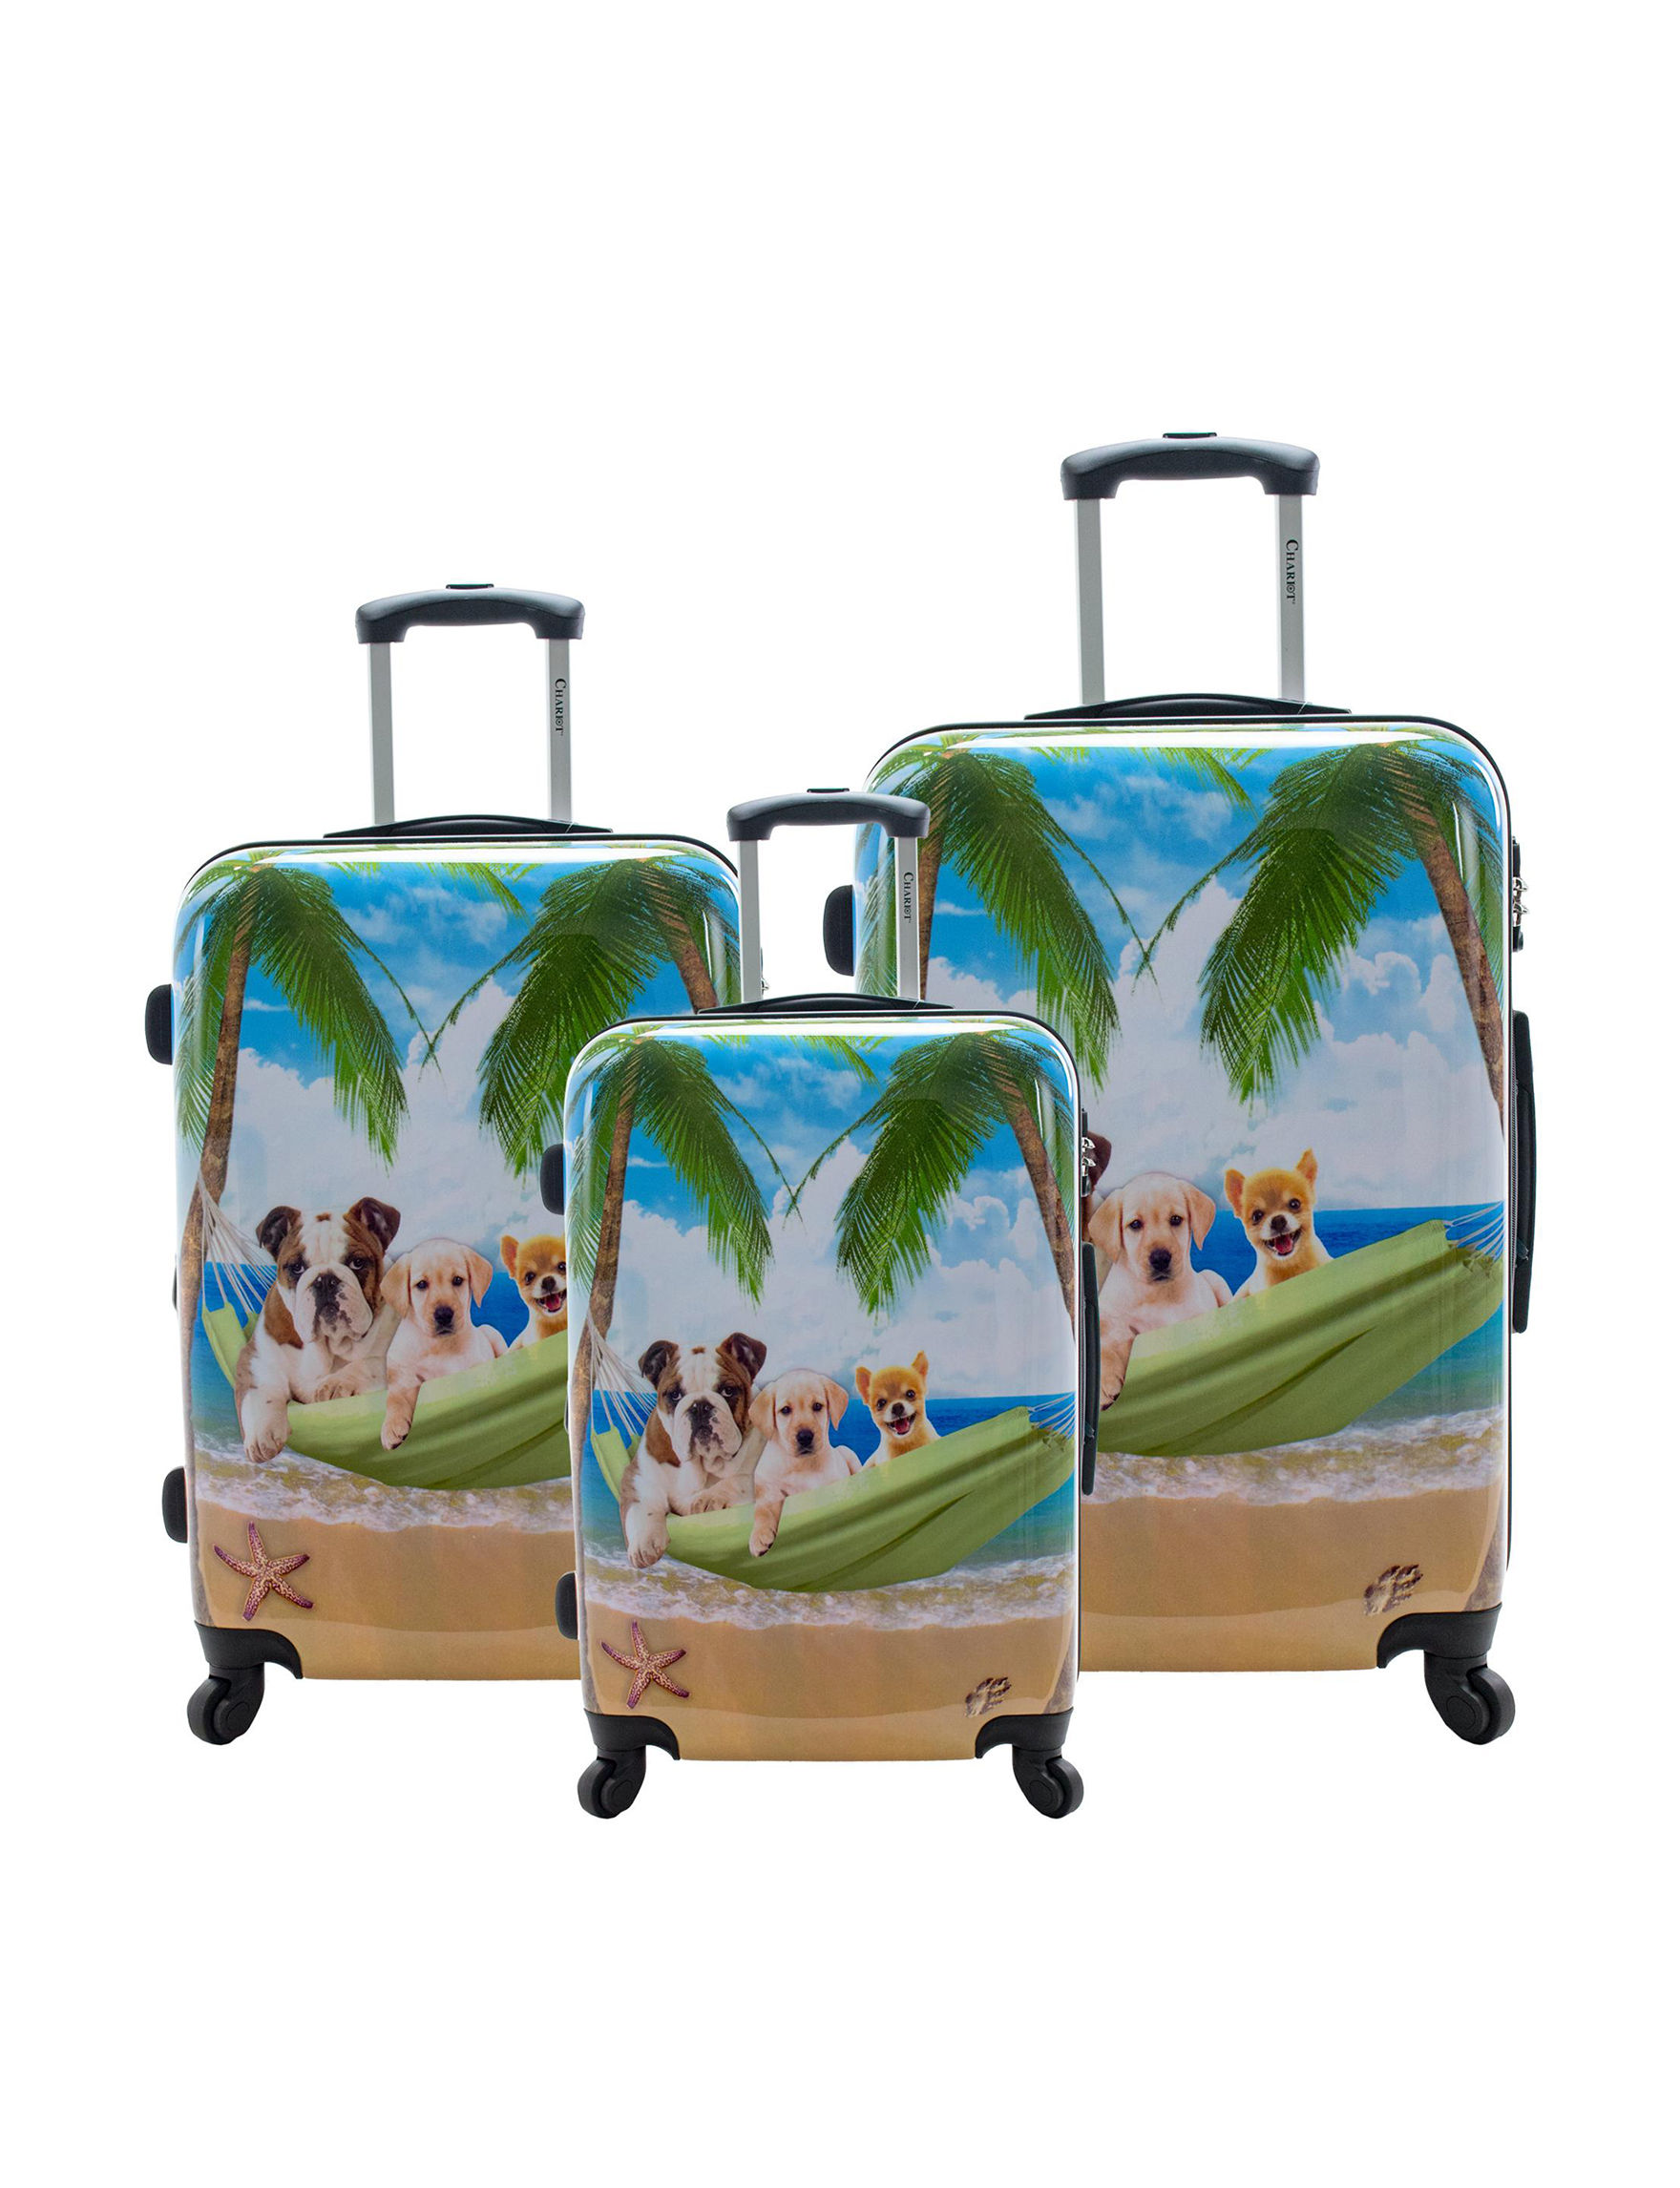 Chariot Travelware Blue / Multi Luggage Sets